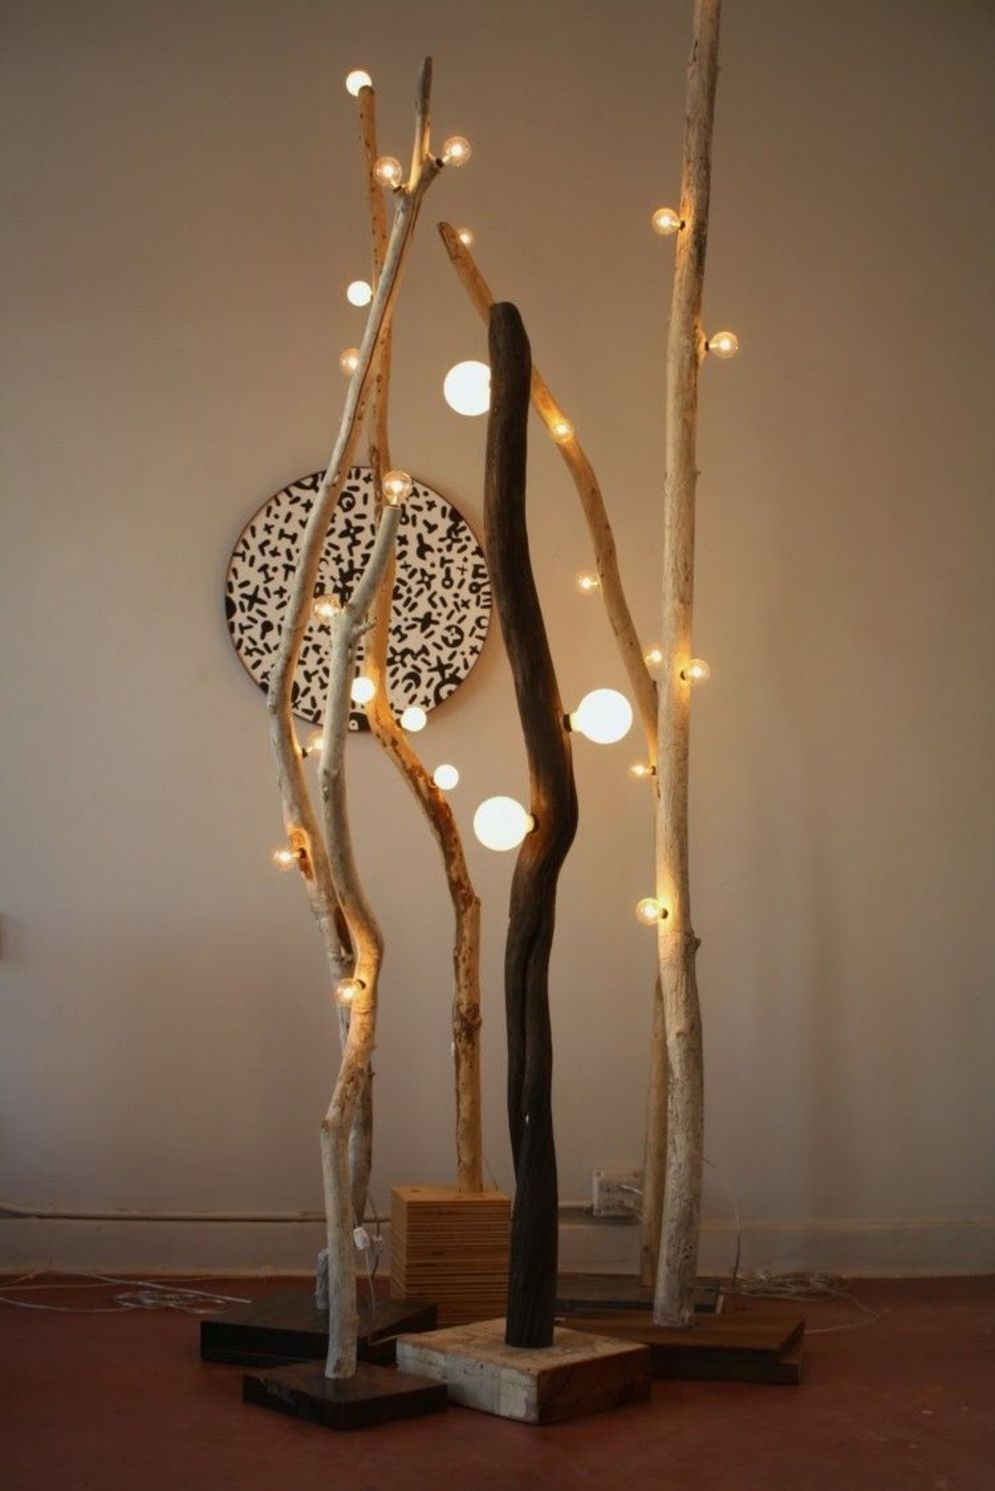 Awesome driftwood lamp stands giving authentic decoration in natural art style Image 5